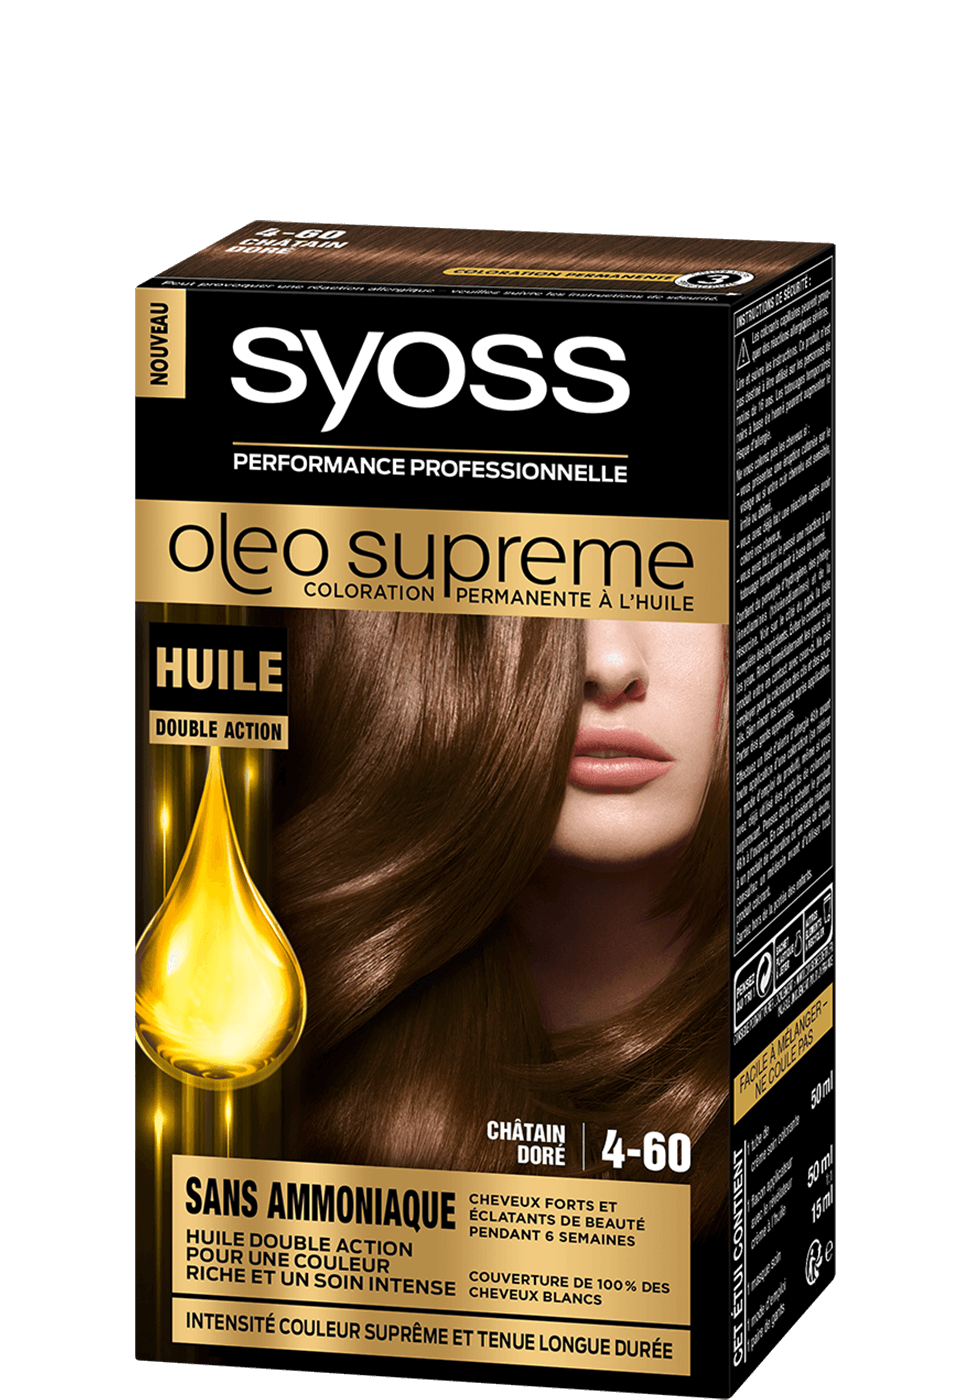 syoss_fr_oleo_supreme_4_60_chatain_dore_970x1400